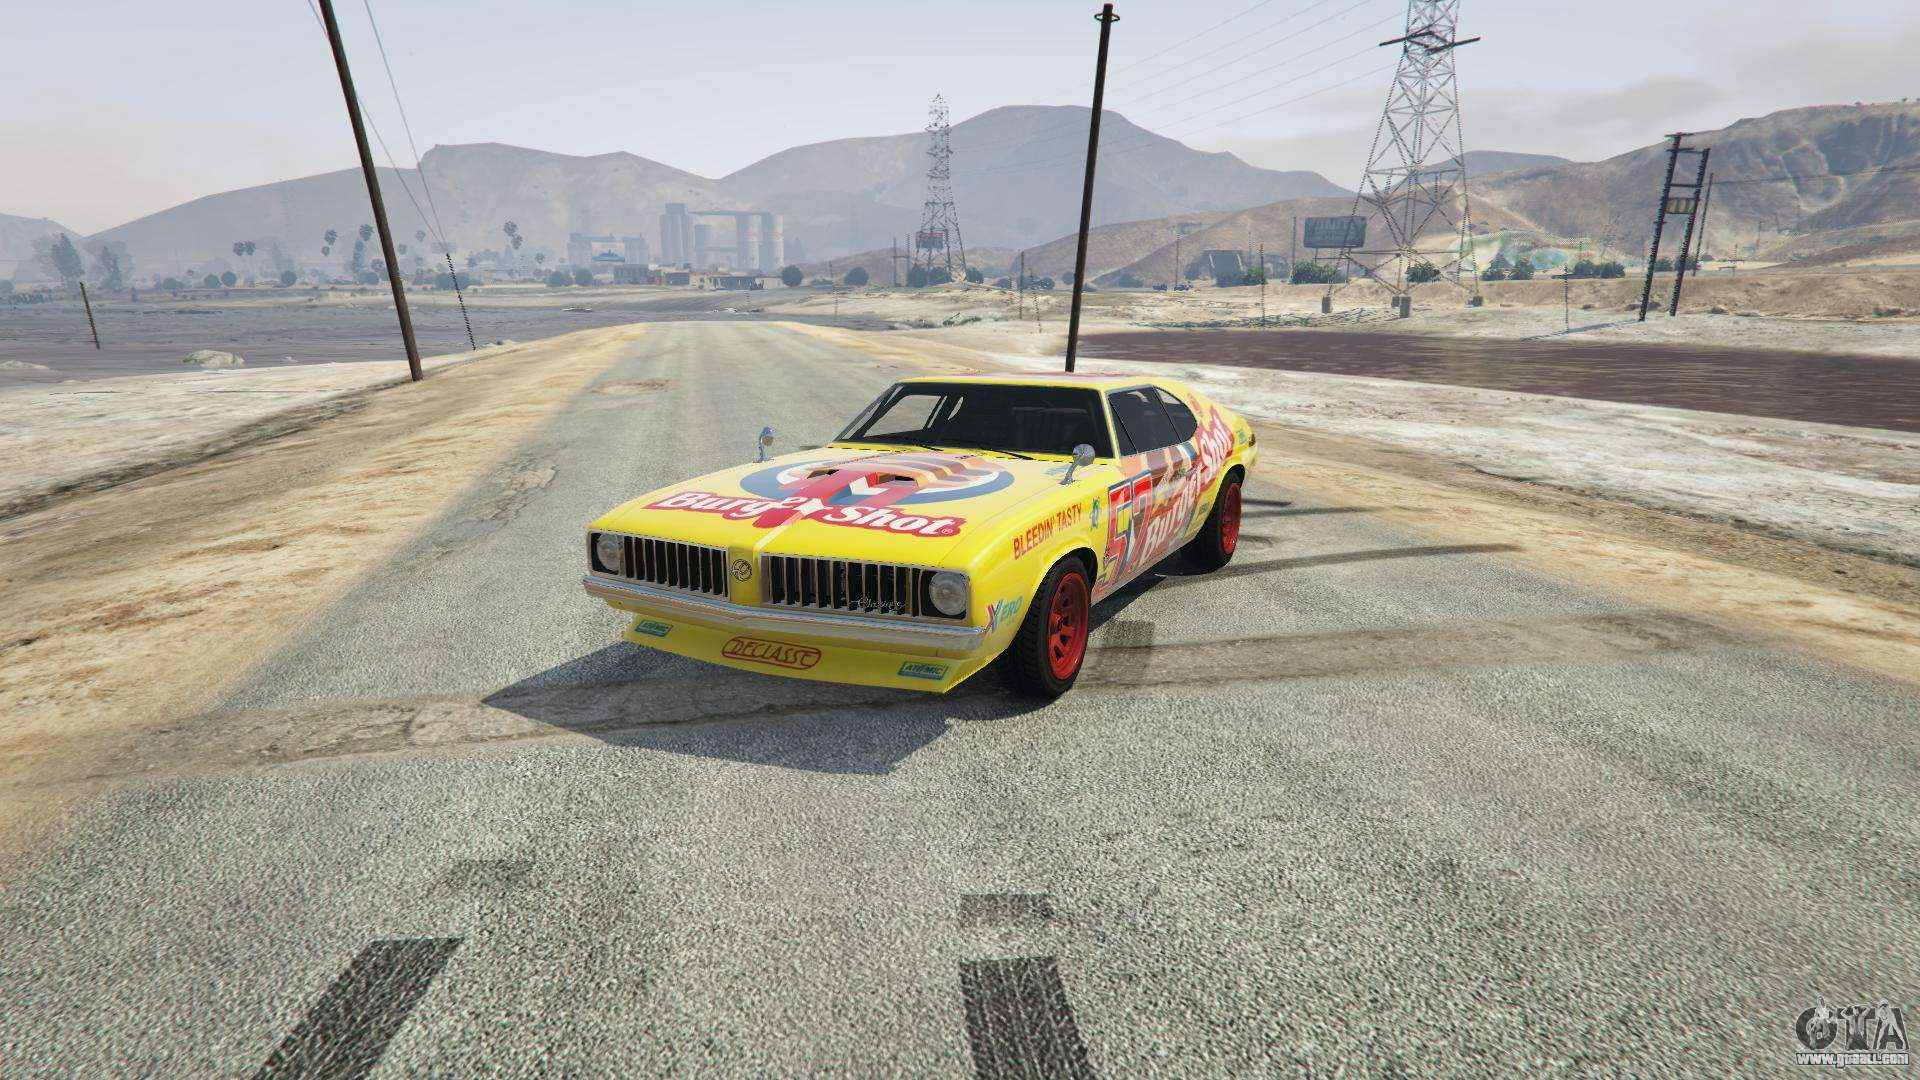 Burger Shot Stallion from GTA 5 - front view